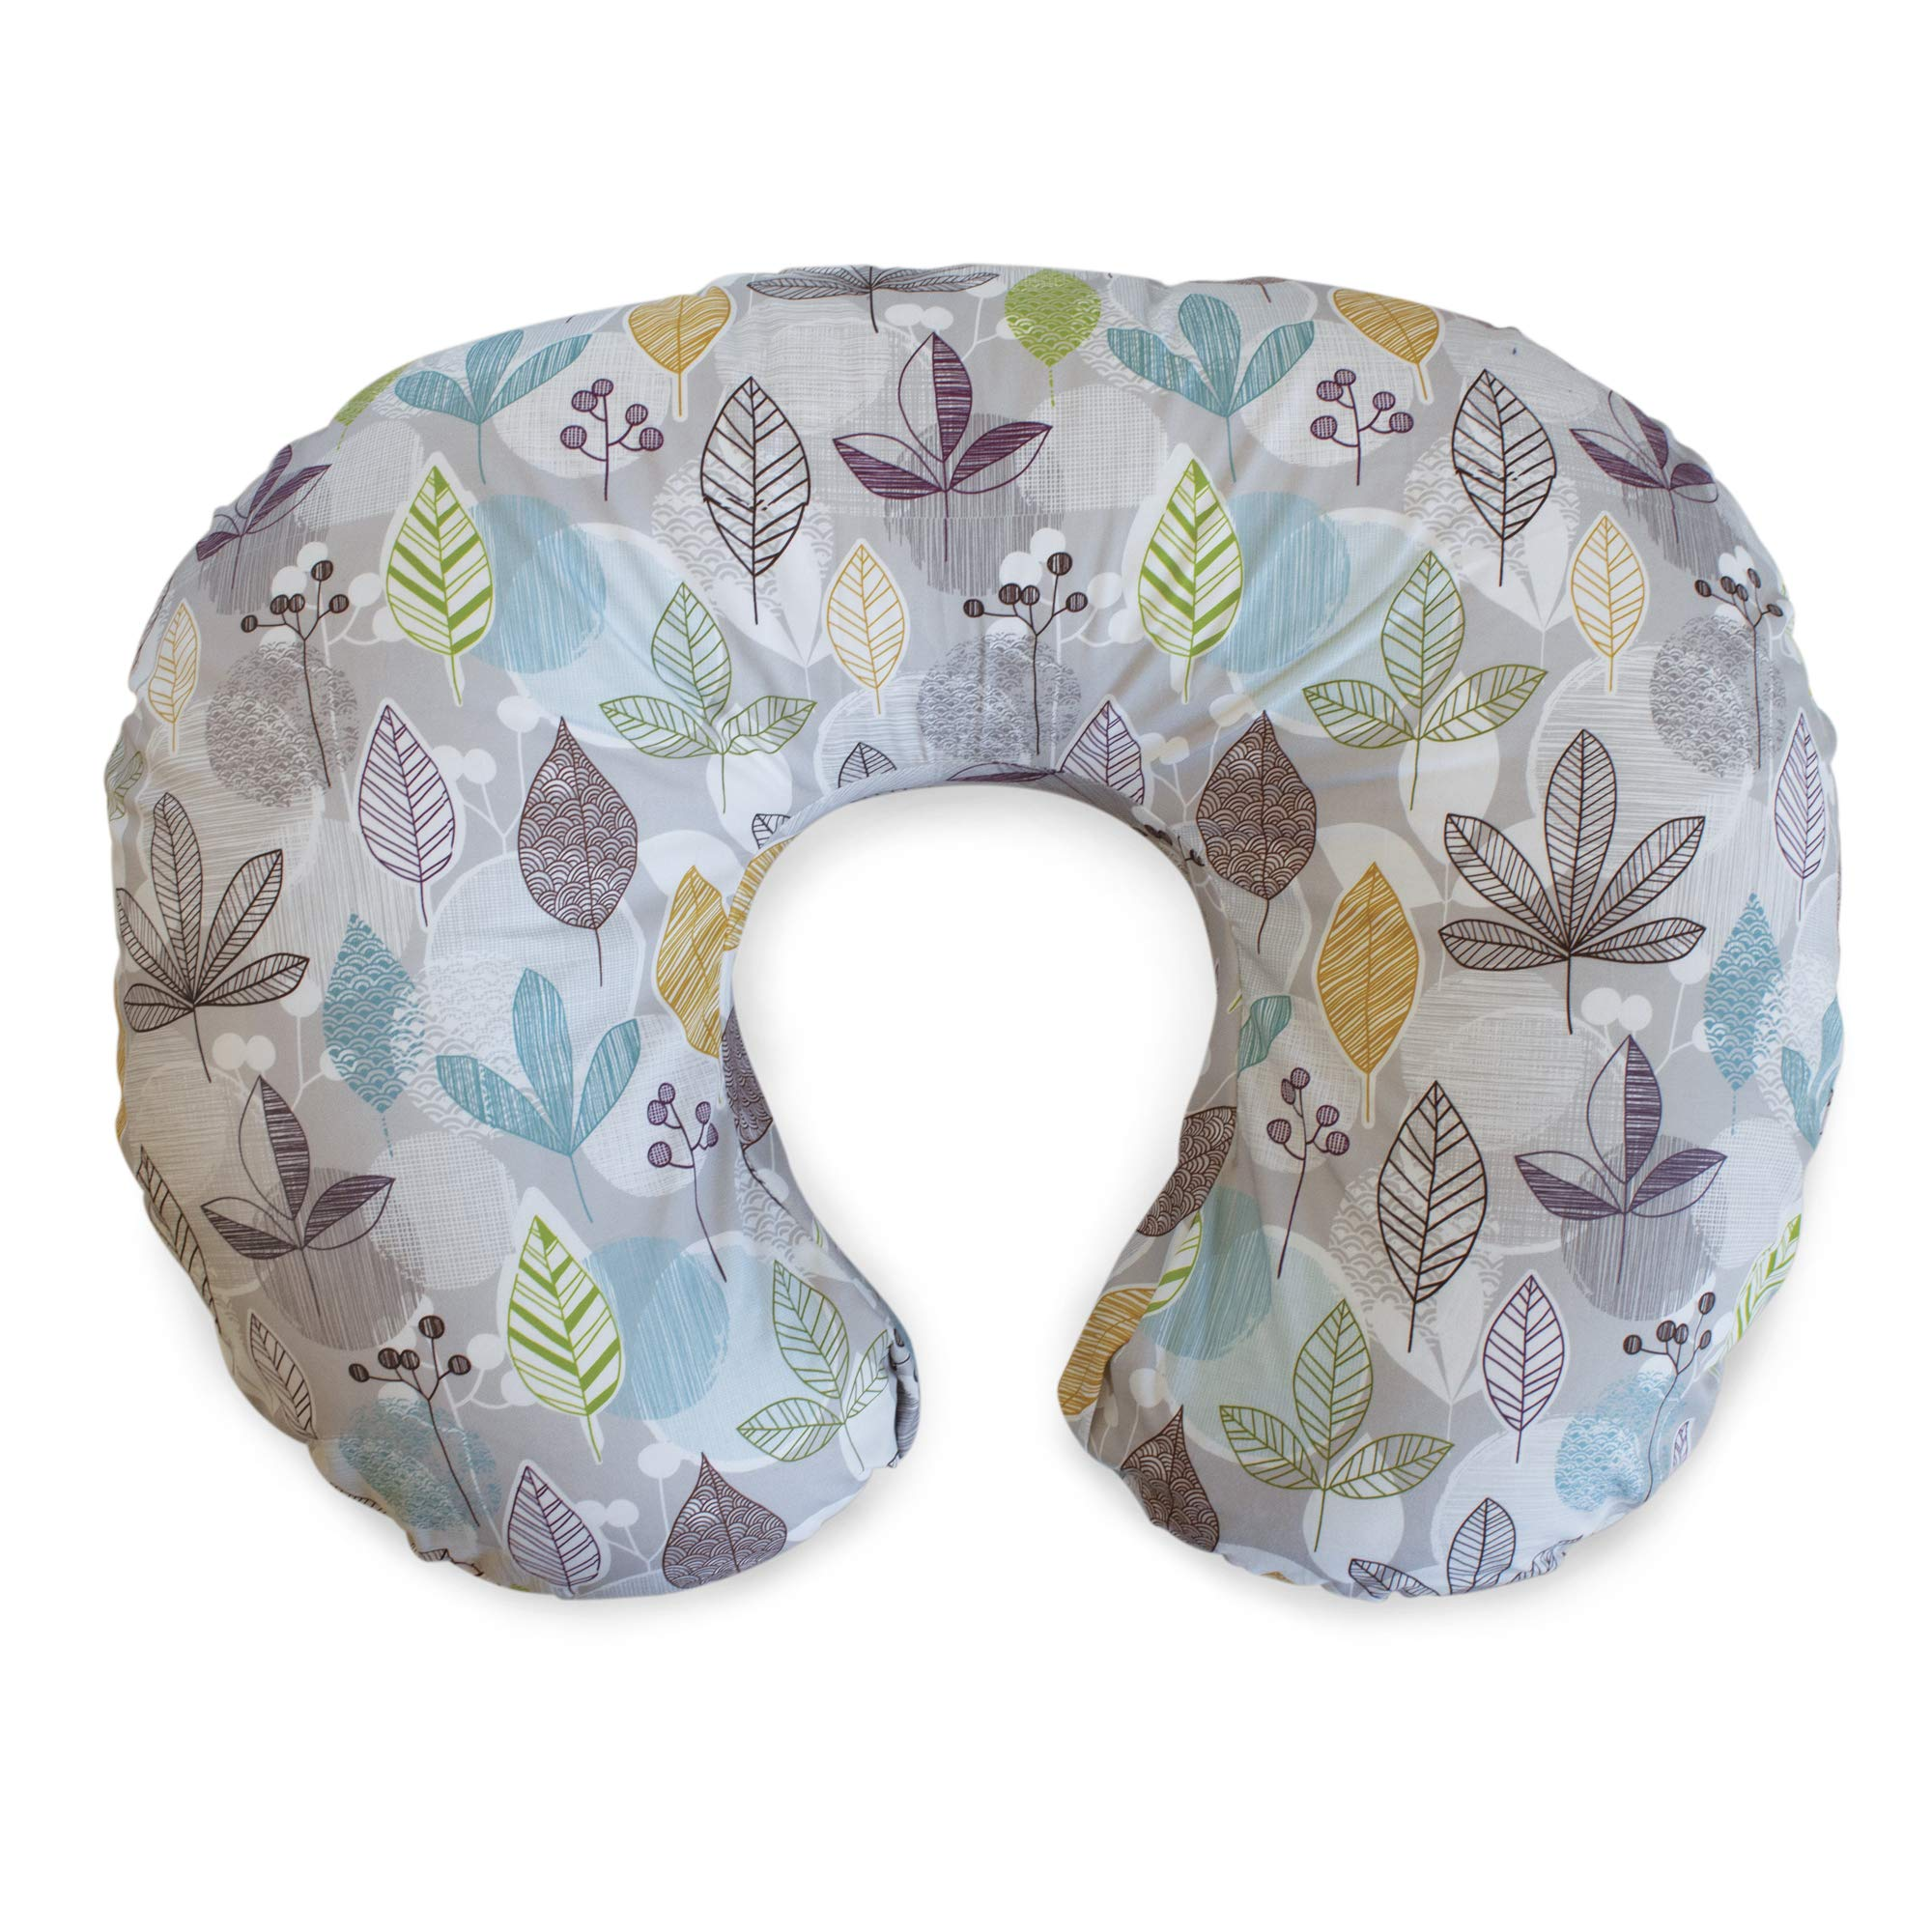 Boppy Original Nursing Pillow and Positioner, Colorful Leaves, Cotton Blend Fabric with allover fashion